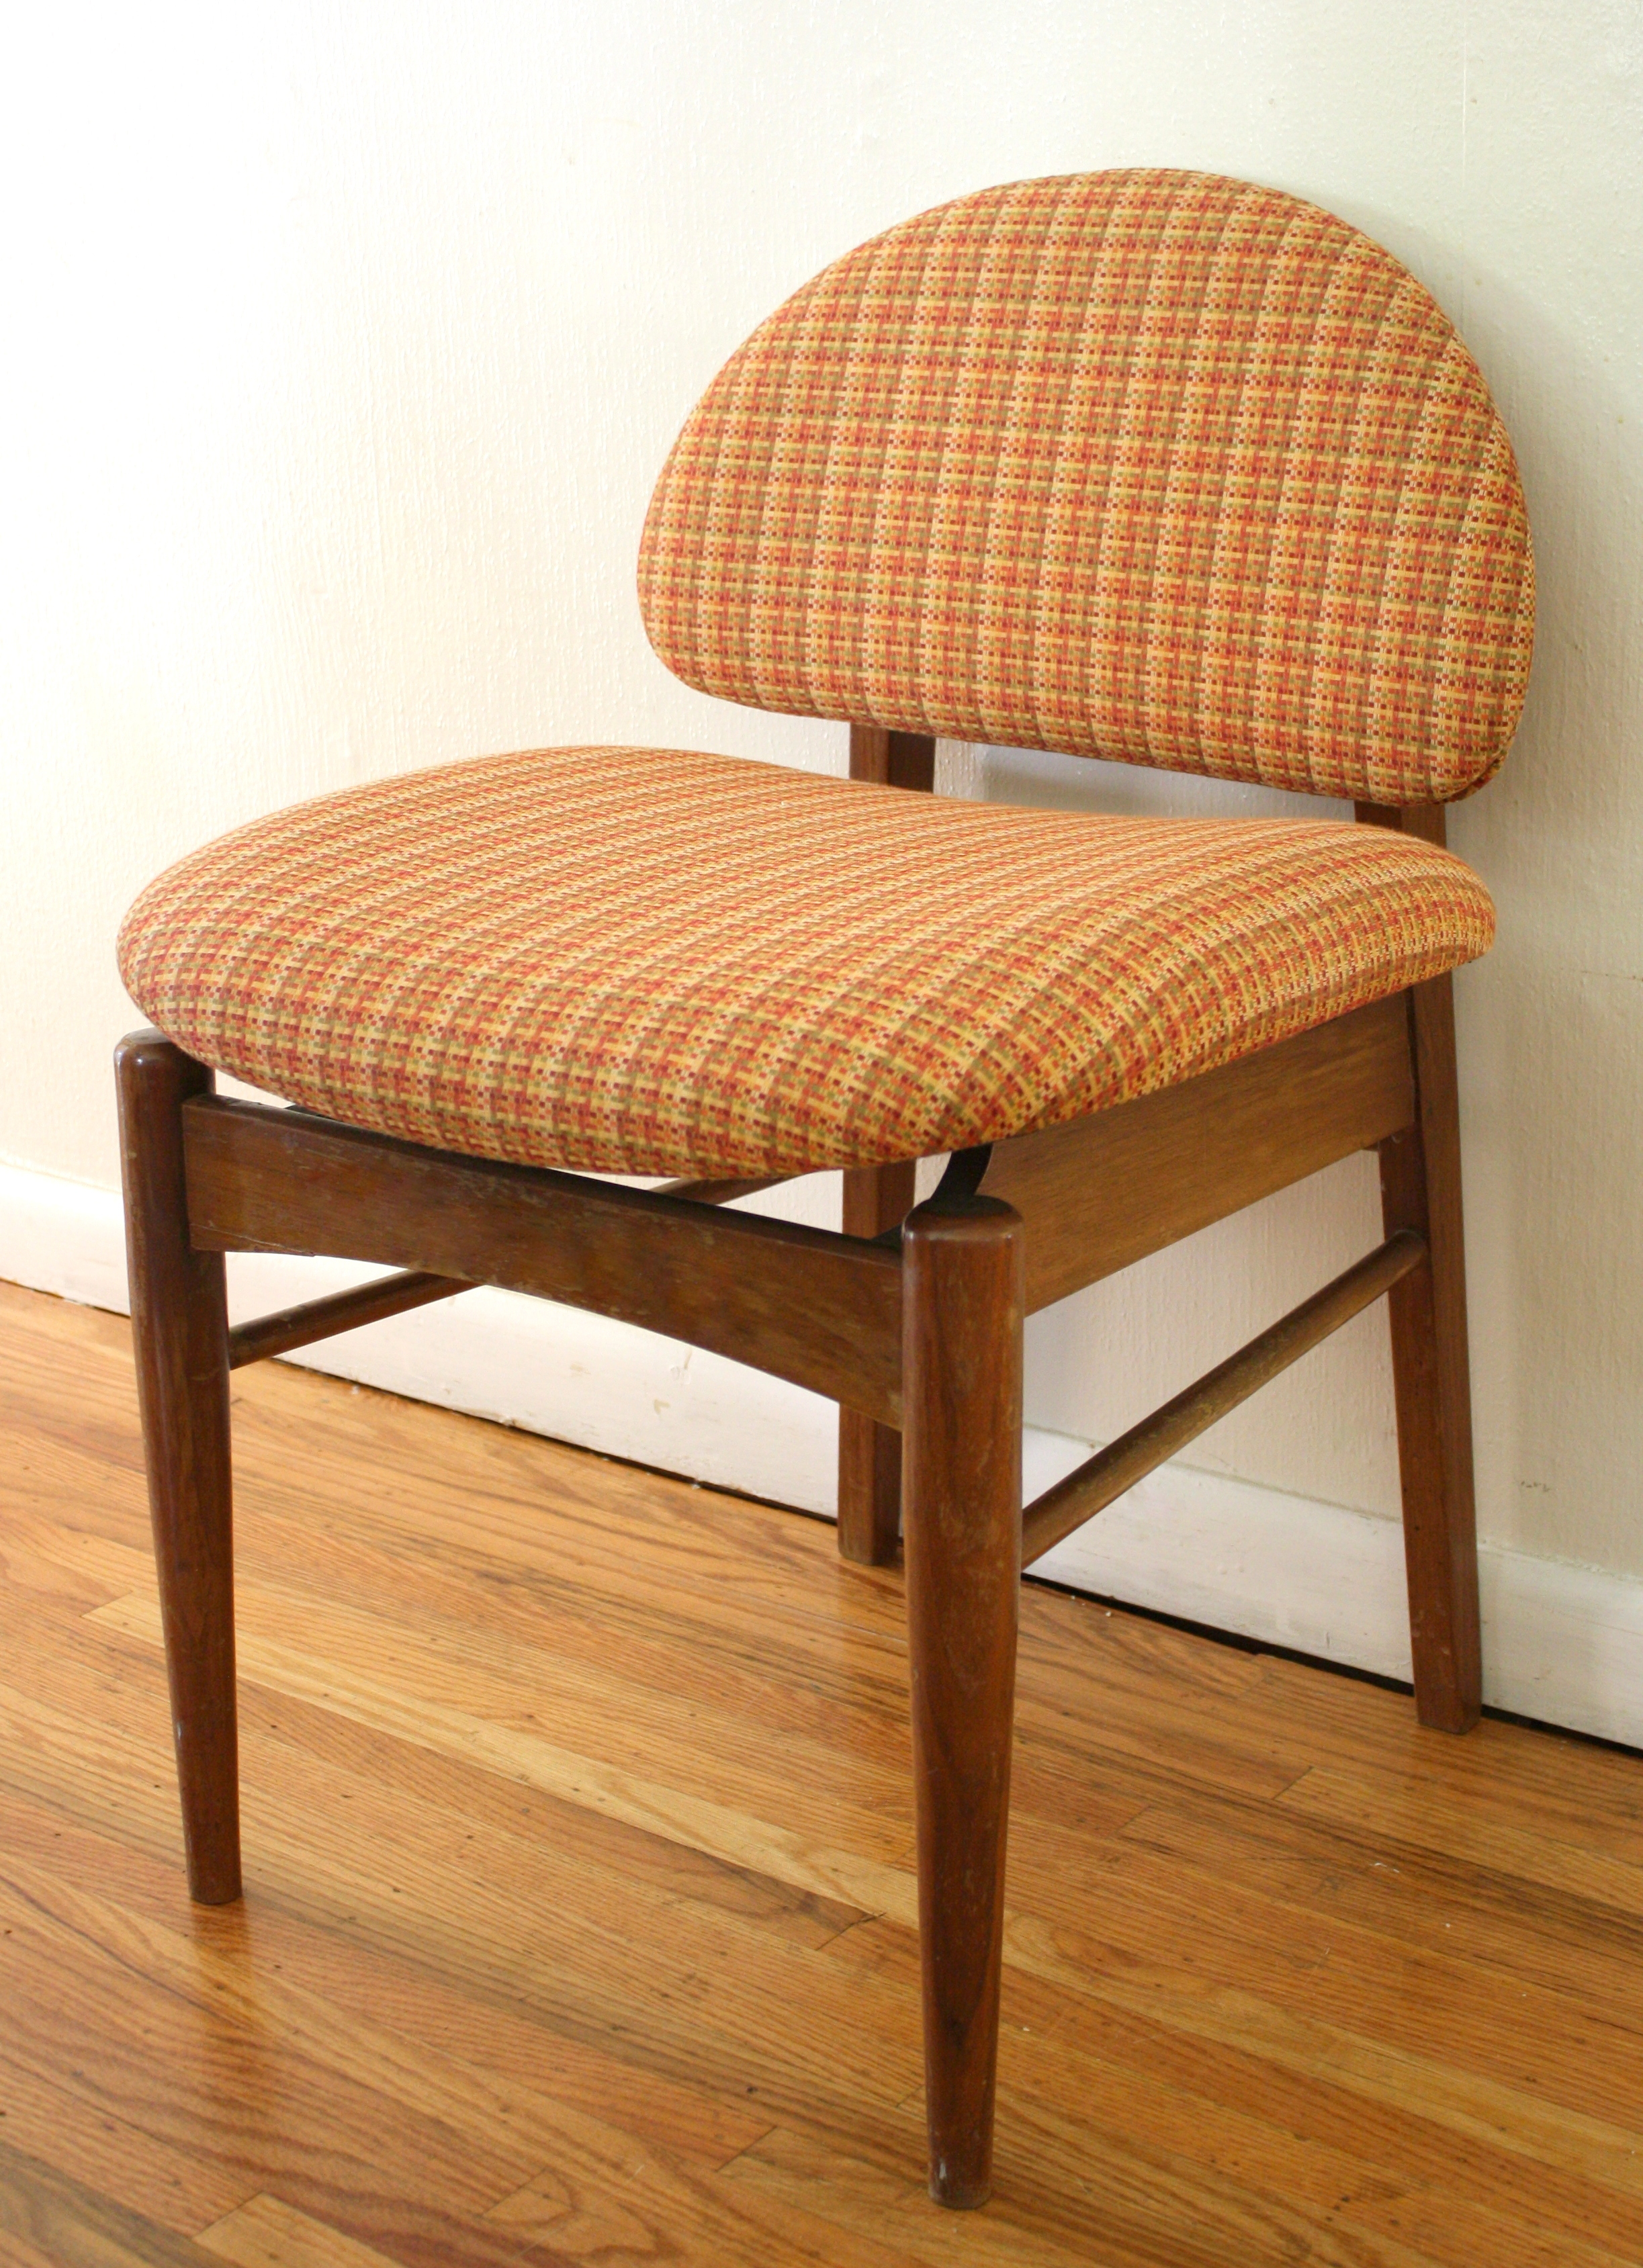 Mid Century Upholstered Chair Mid Century Modern Danish Style Upholstered Chair Picked